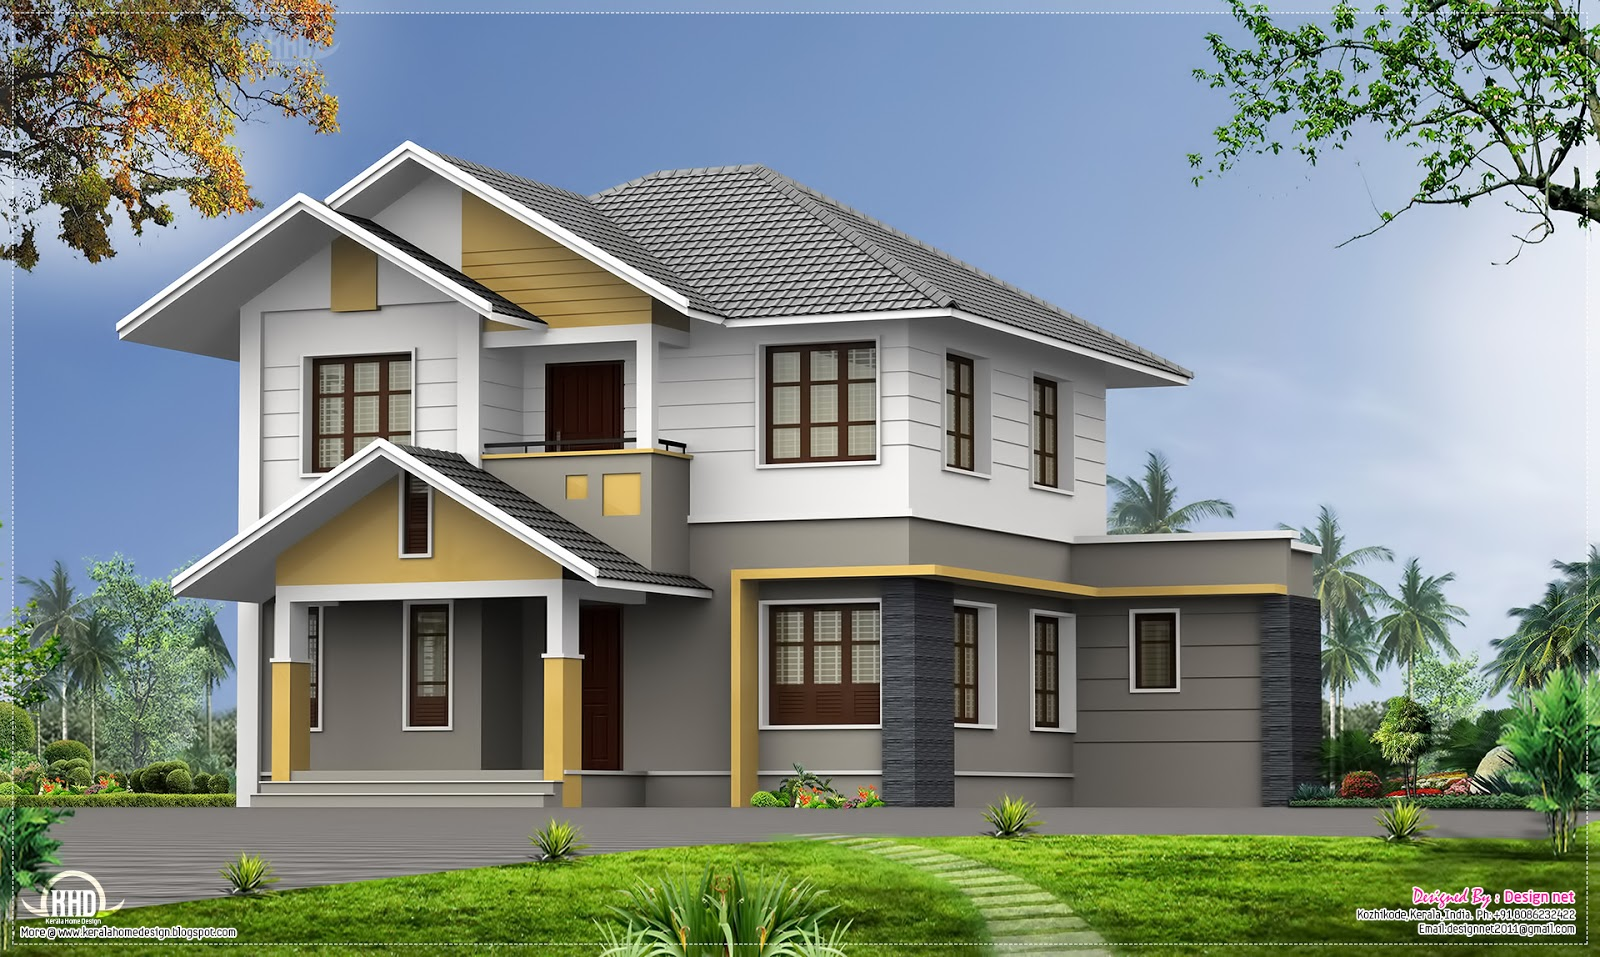 5 bhk beautiful kerala villa with sloping roofs home for Elevation of kerala homes